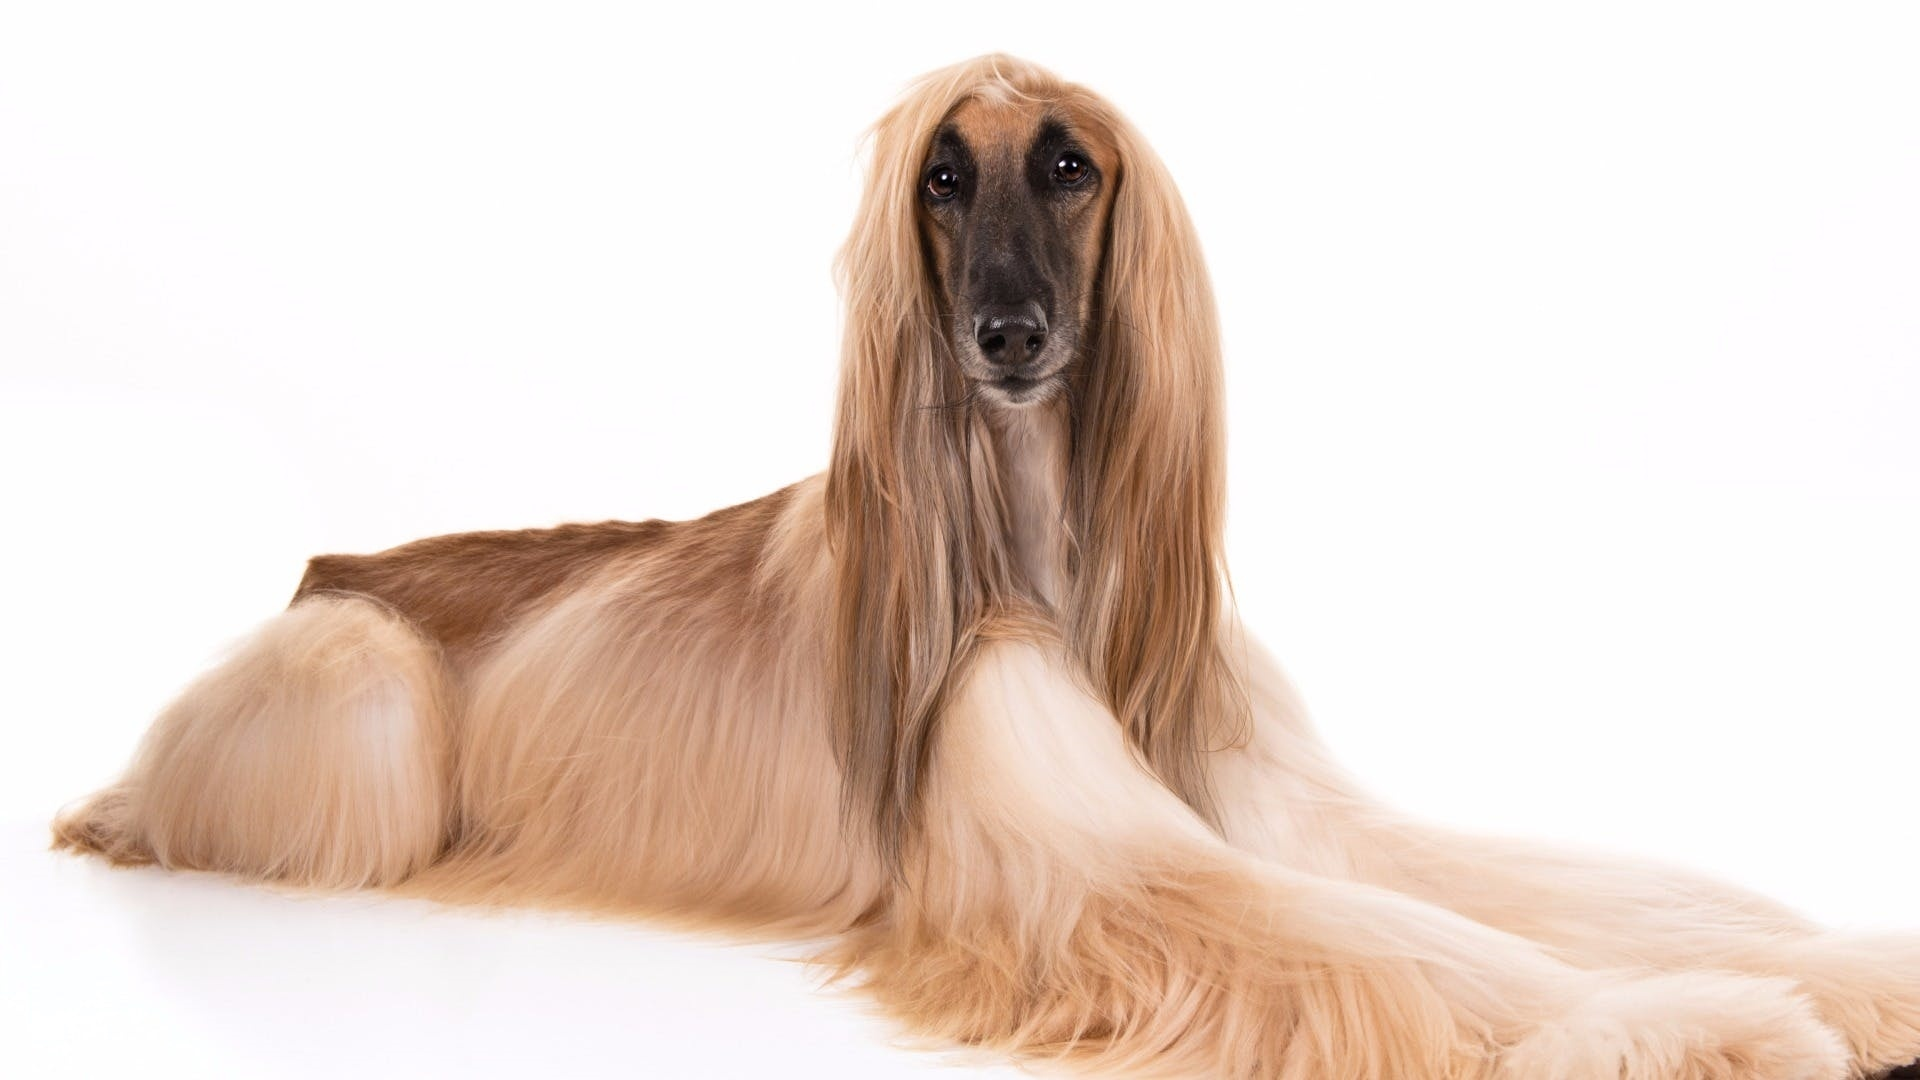 Afghan Hound desktop wallpaper hd